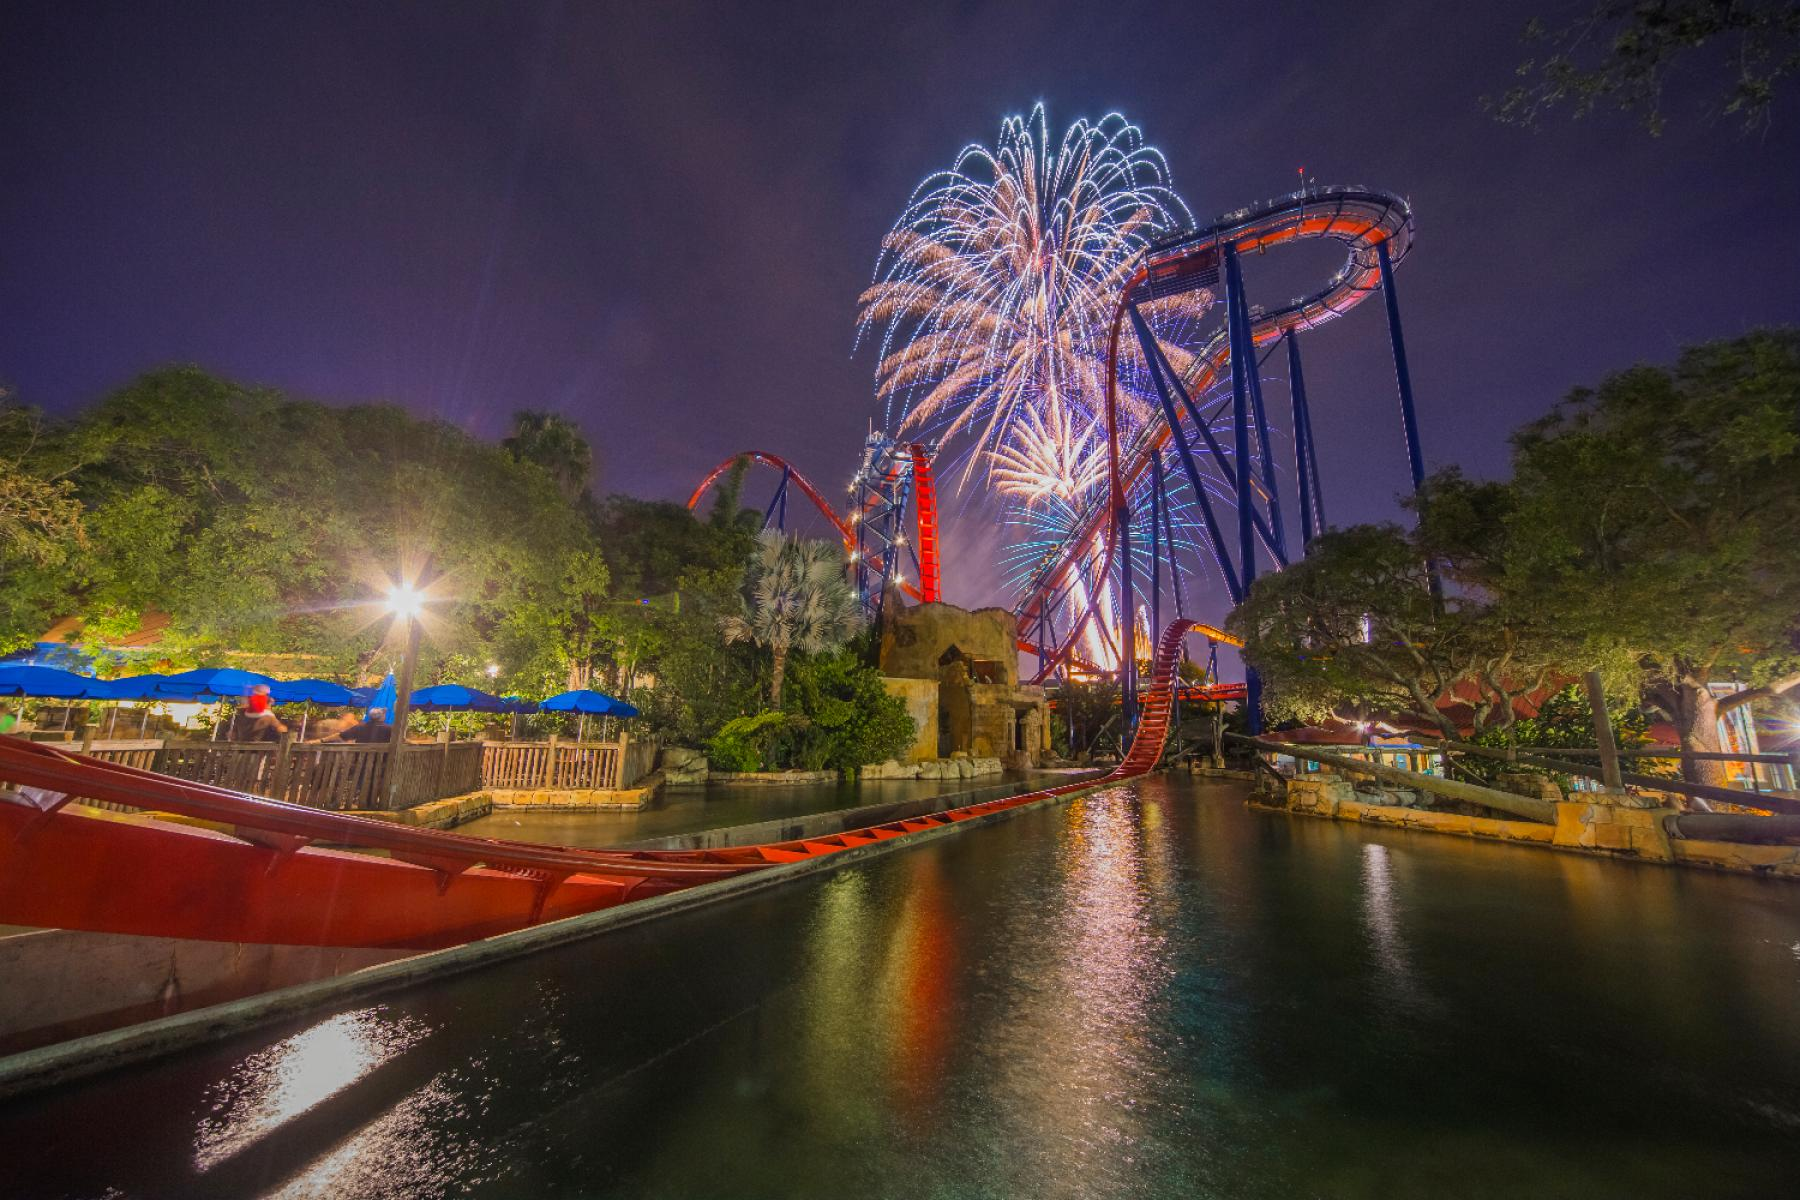 Independence Day at Busch Gardens, Tampa FL - Jul 4, 2018 - 10:00 AM